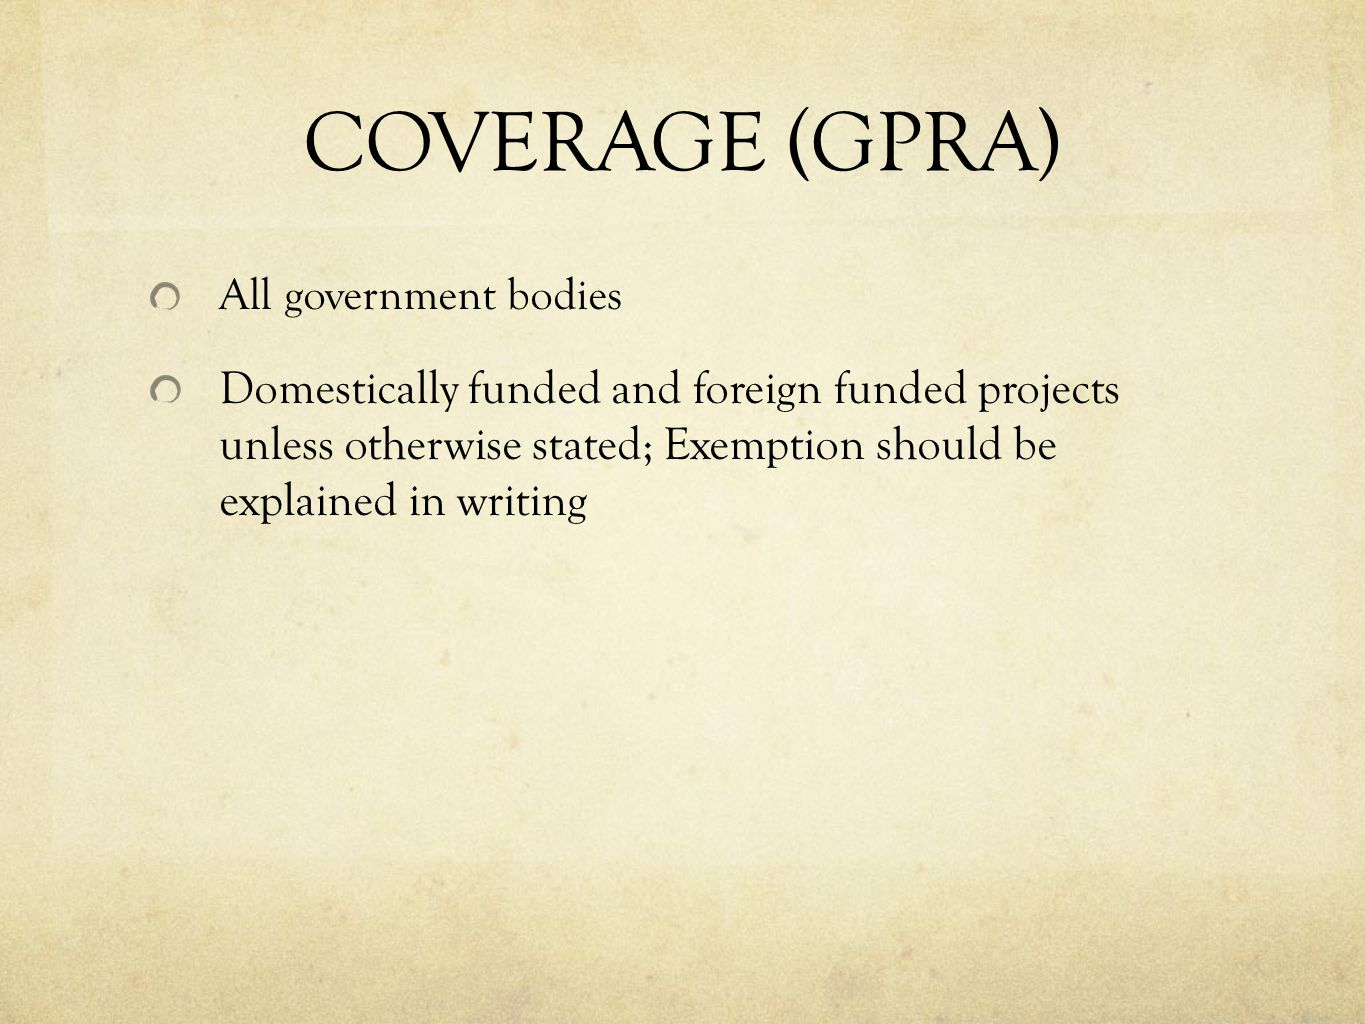 COVERAGE (GPRA) All government bodies Domestically funded and foreign funded projects unless otherwise stated; Exemption should be explained in writing